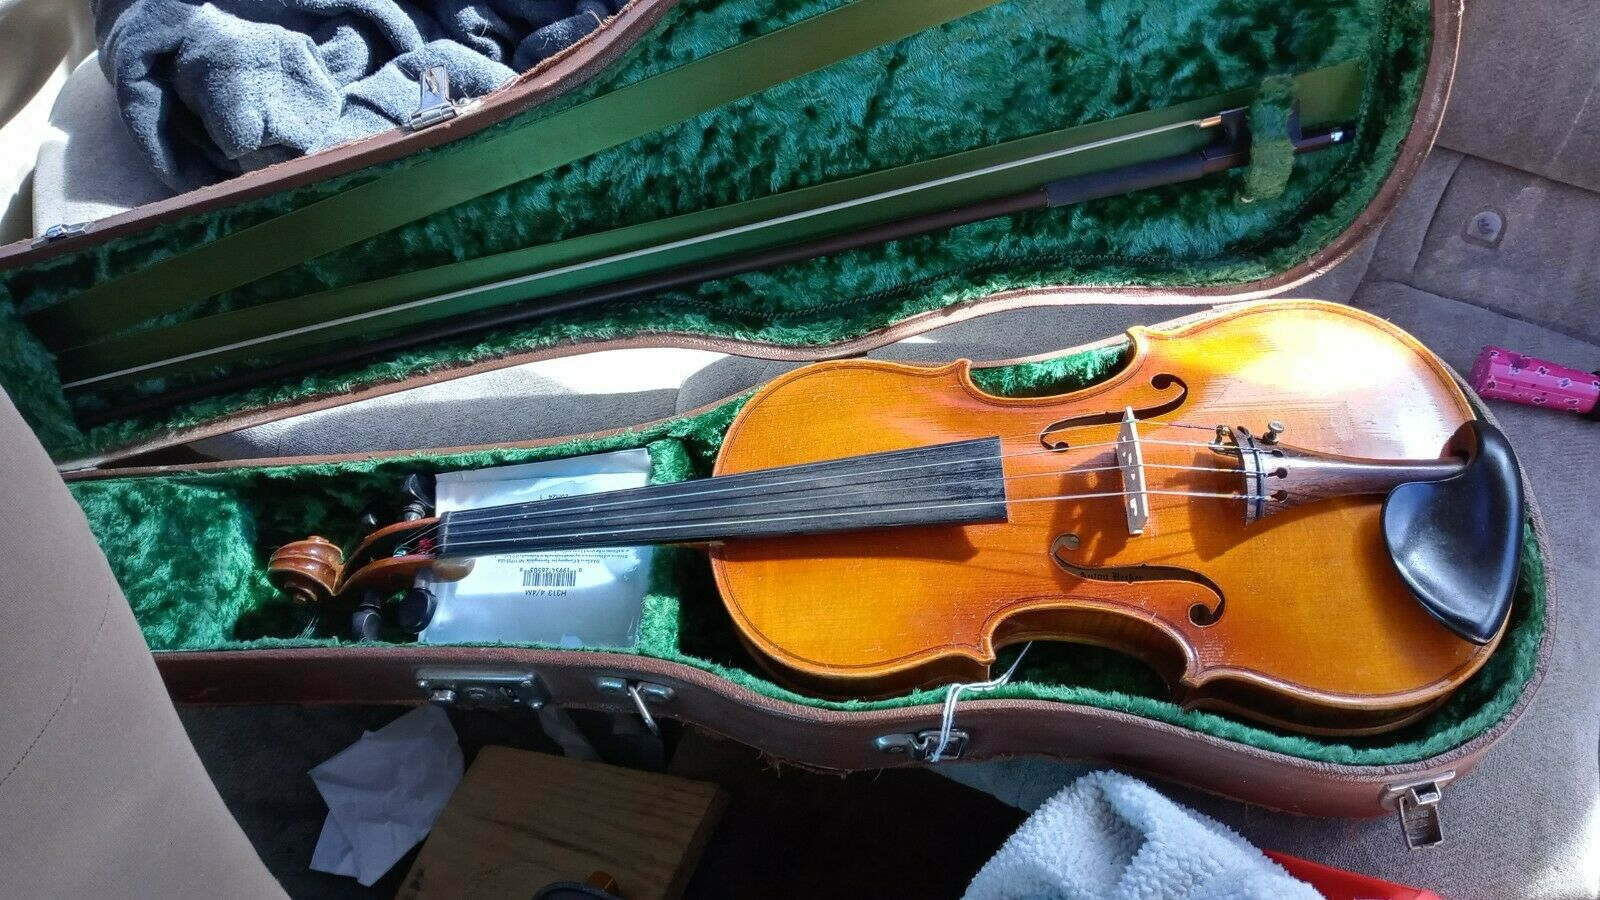 Anton Becker Violin, Size 3/4, Used Excellent Condition W/ Hard Case. - $154.00